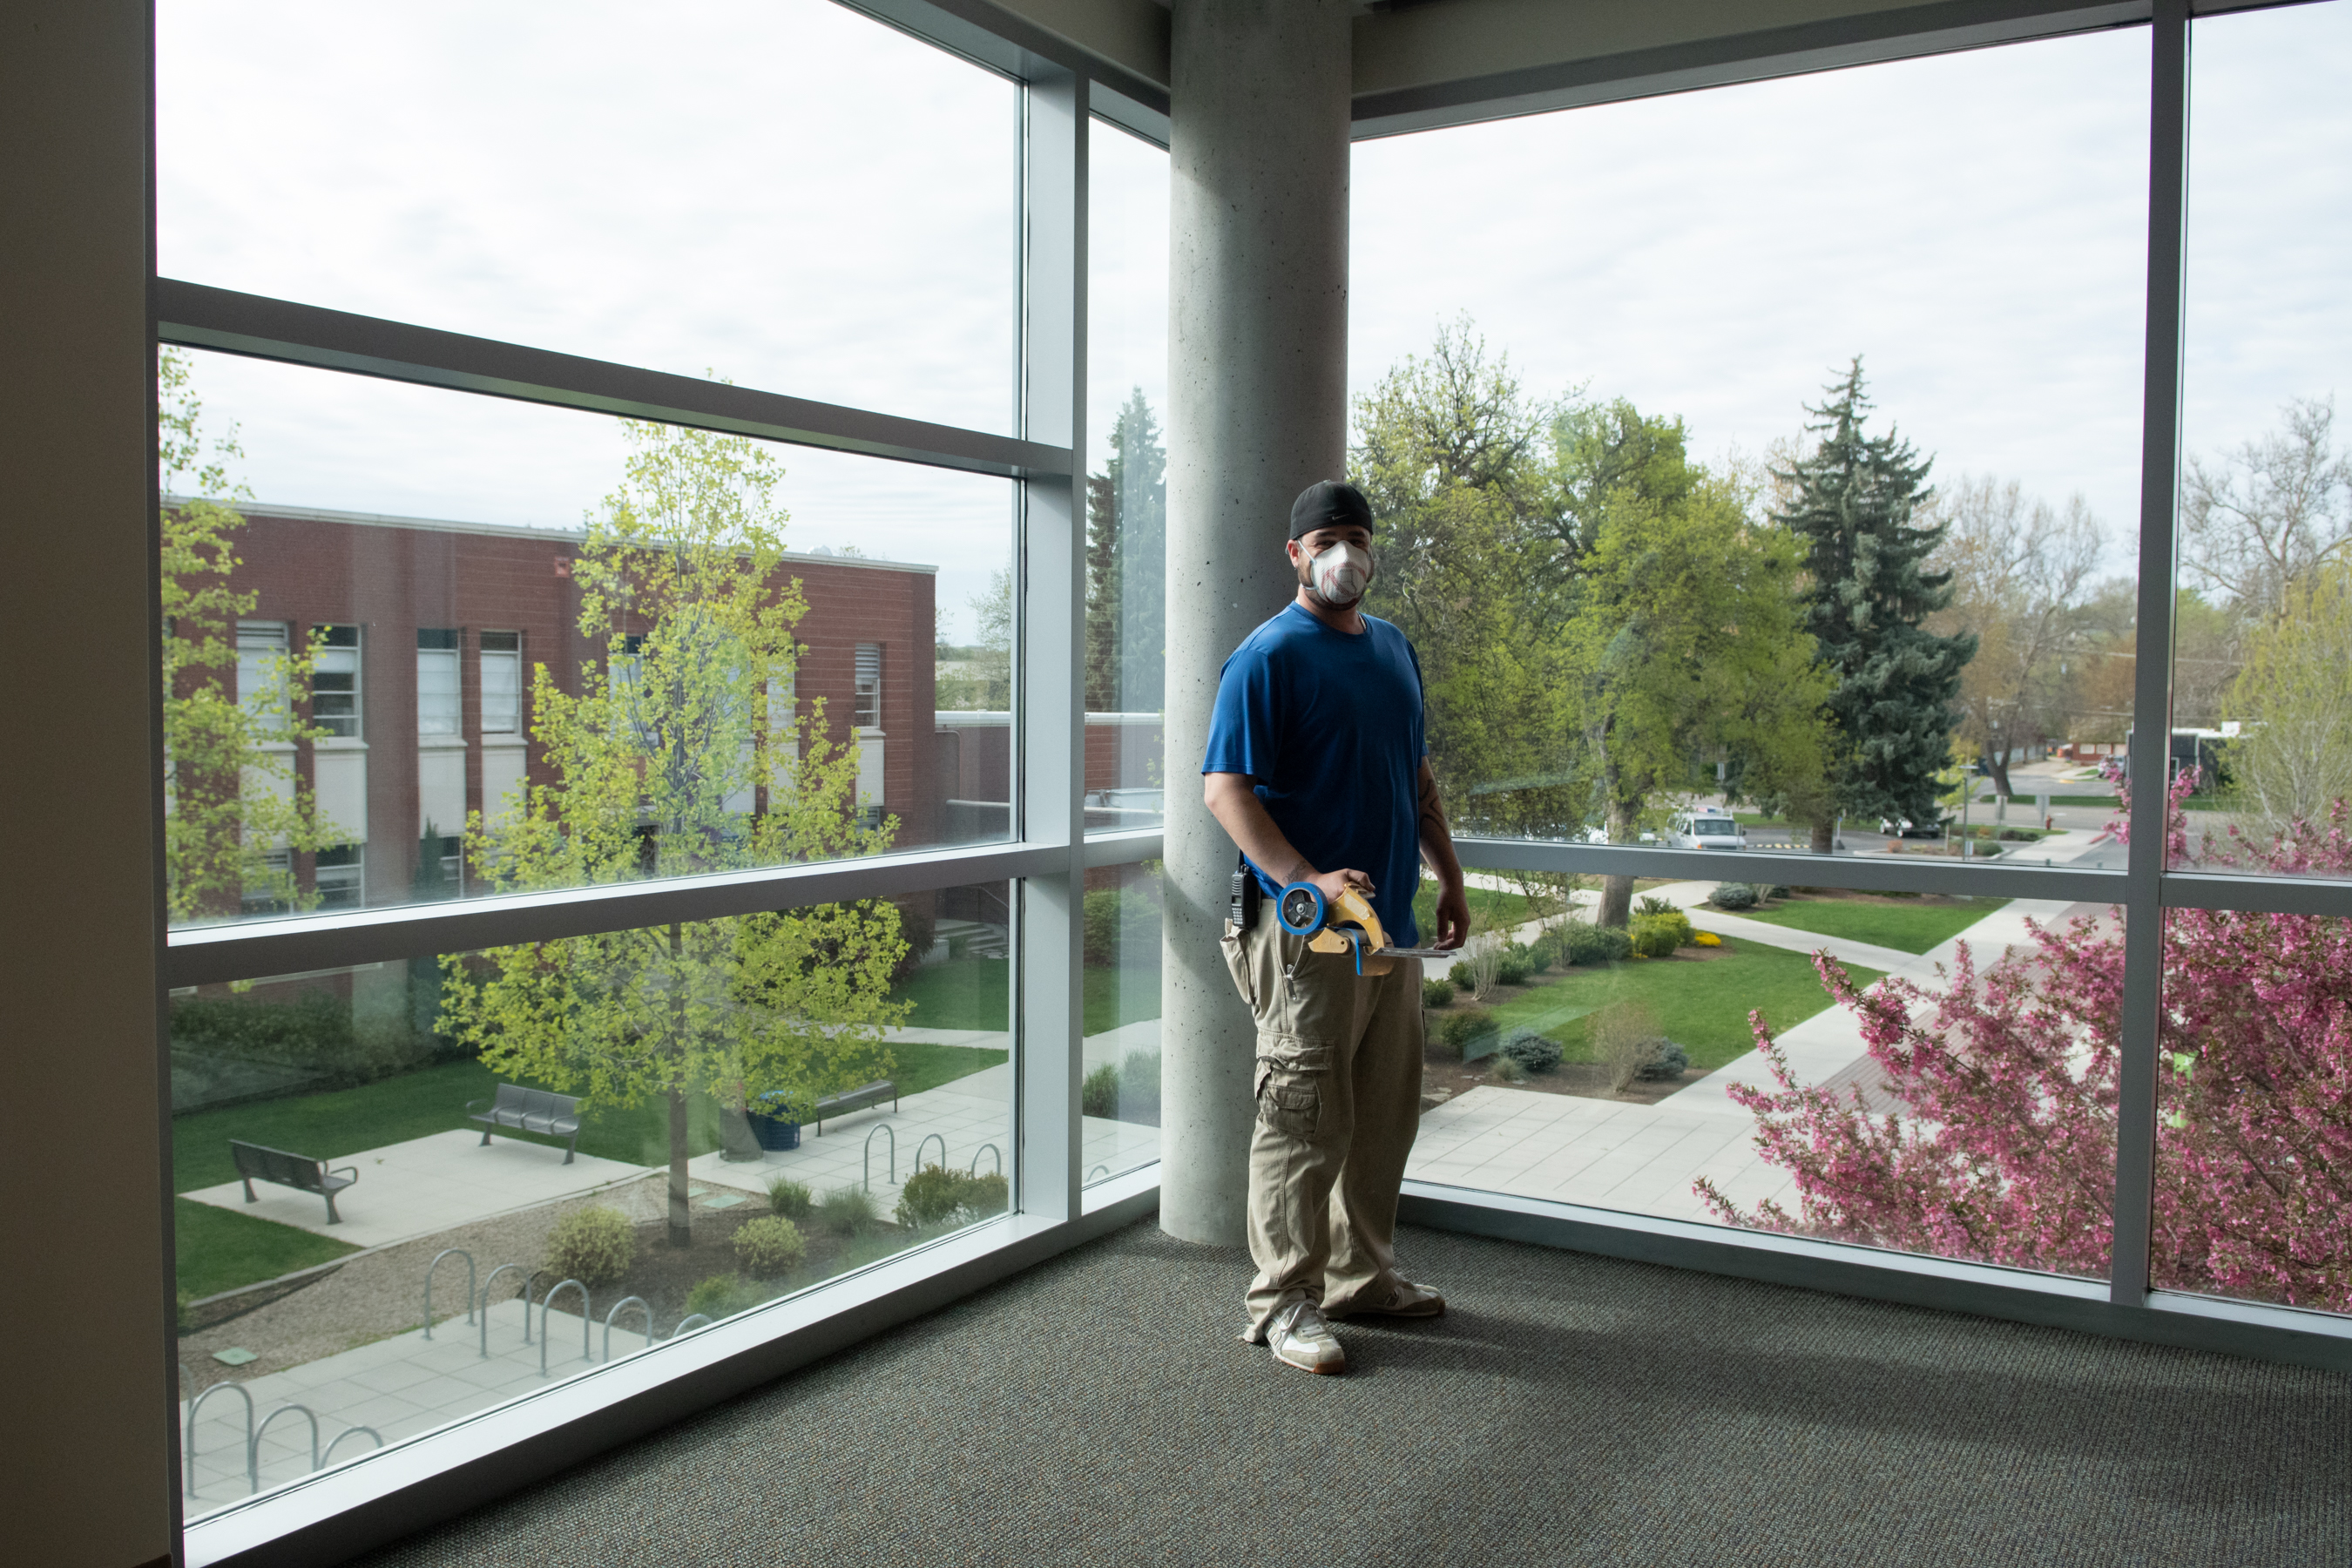 Charlie Ergersdorf is a machine craftsman who has worked on campus for nearly 10 years. He will be graduating from Boise State in May with a degree in business. Photo, Patrick Sweeney.